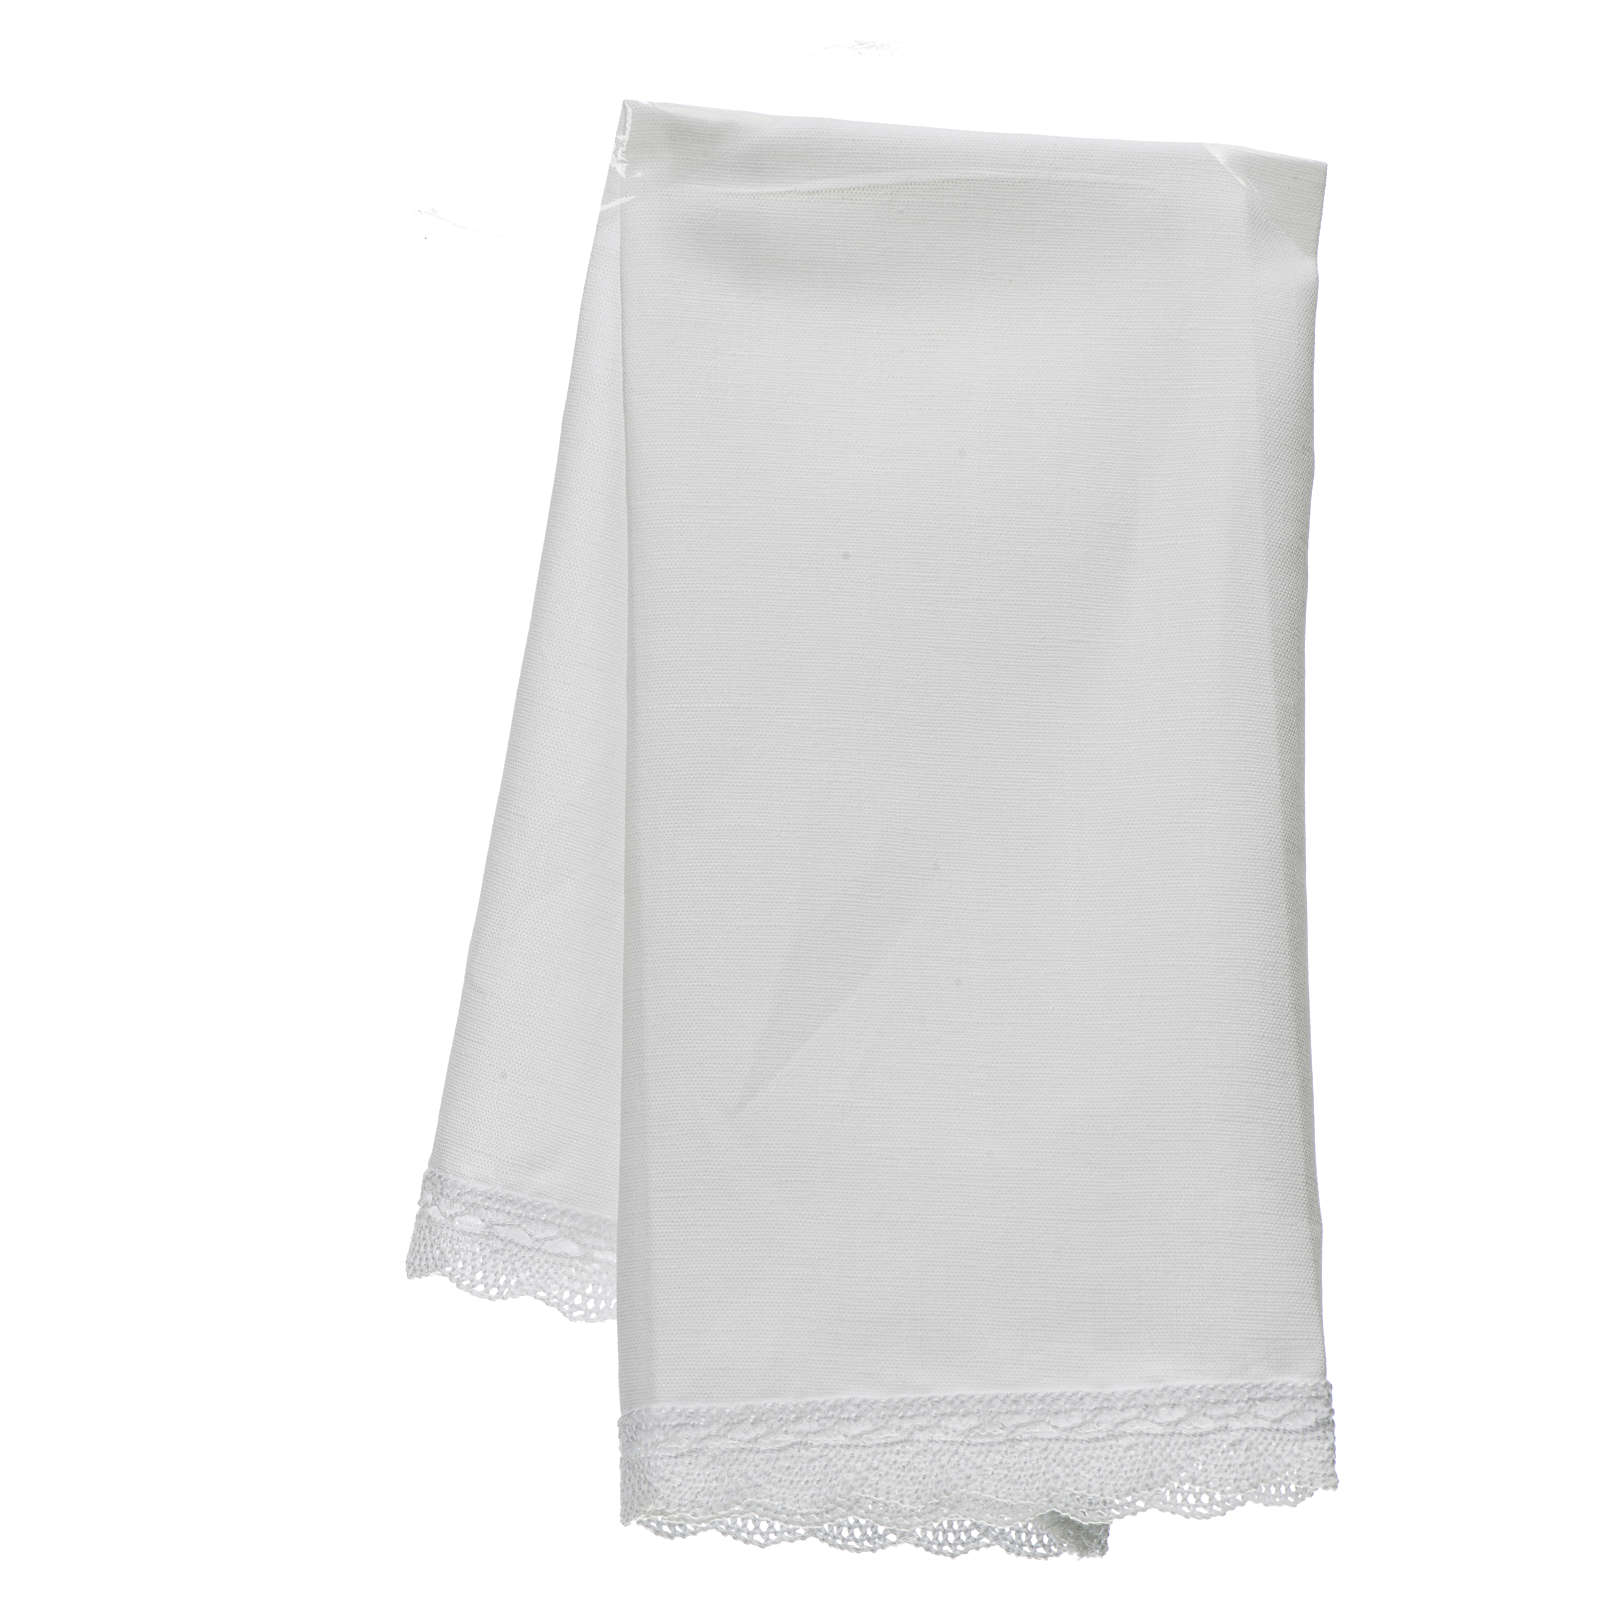 Altar linens, Manuterge in linen and cotton, 2 pieces 4